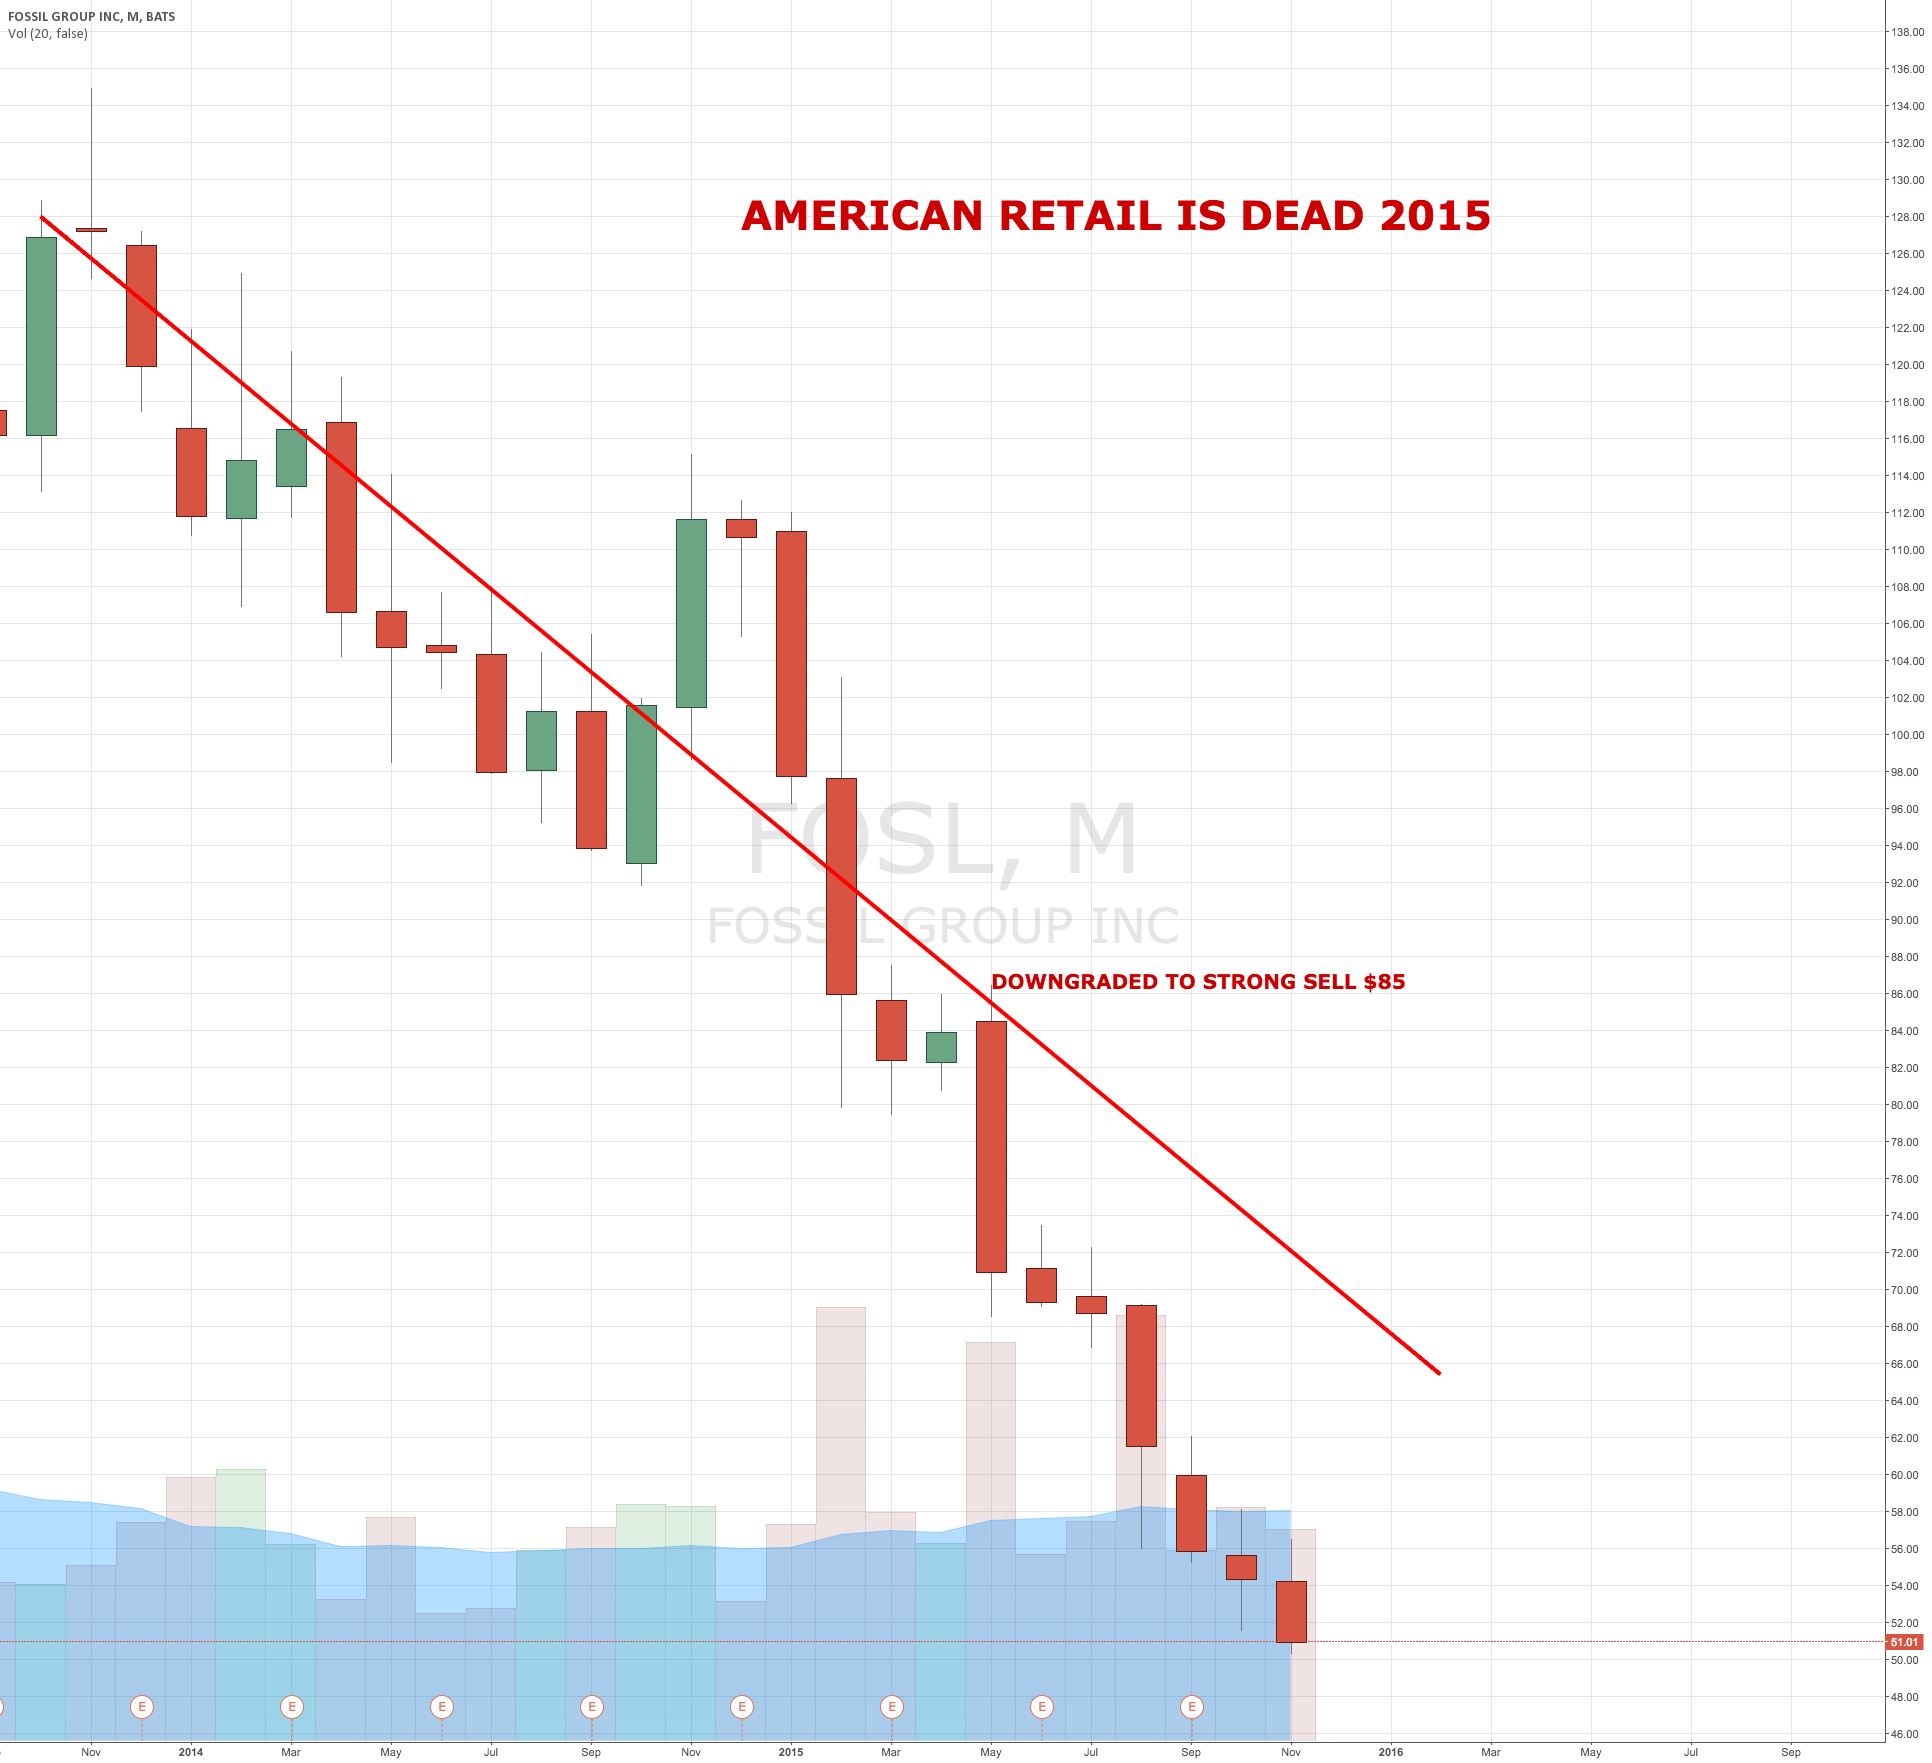 AMERICAN RETAIL IS DEAD SHORT FOSSIL 2015